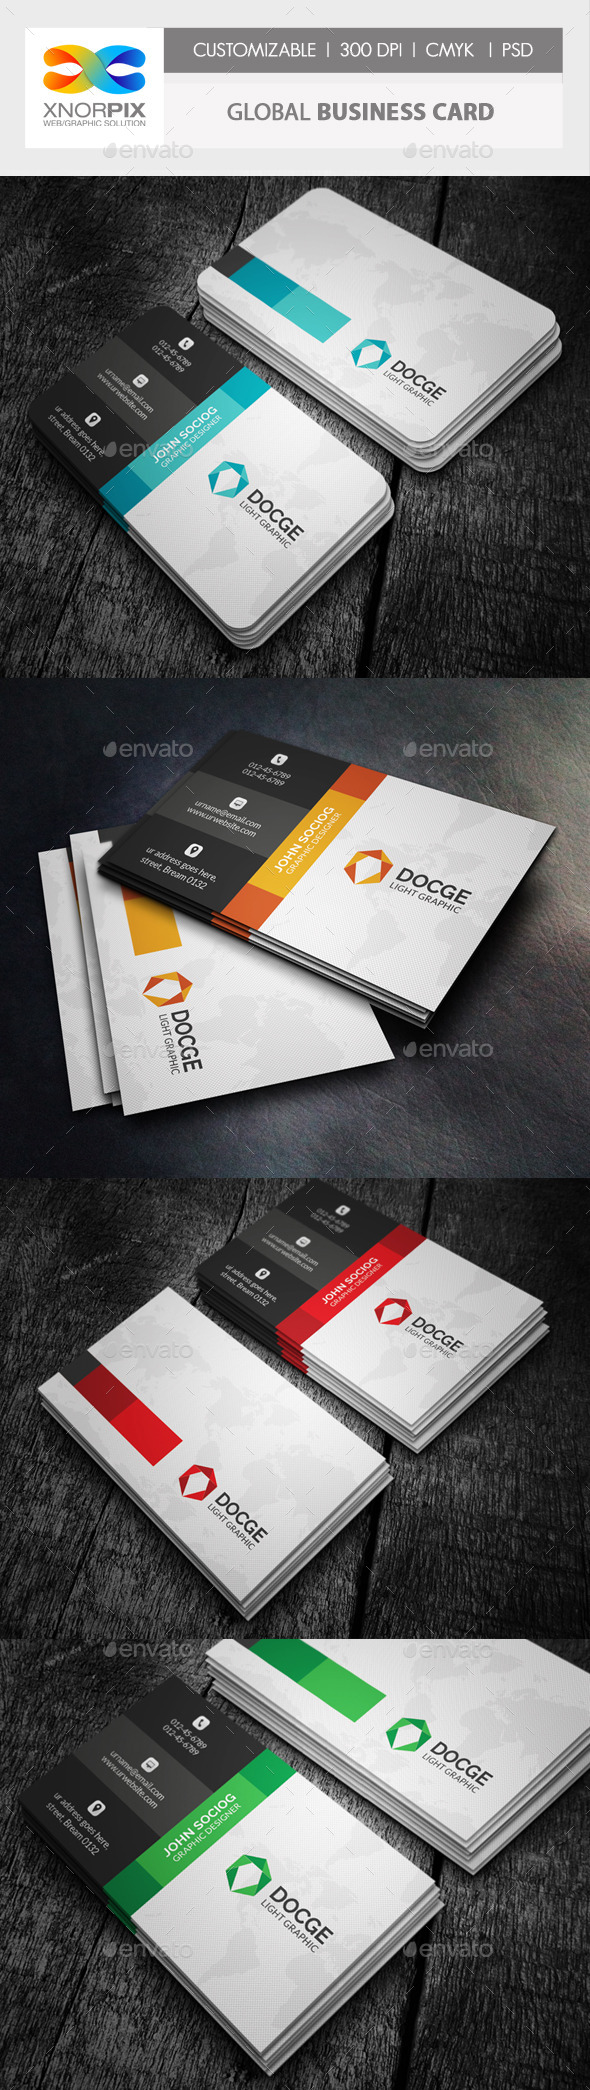 GraphicRiver Global Business Card 10035843